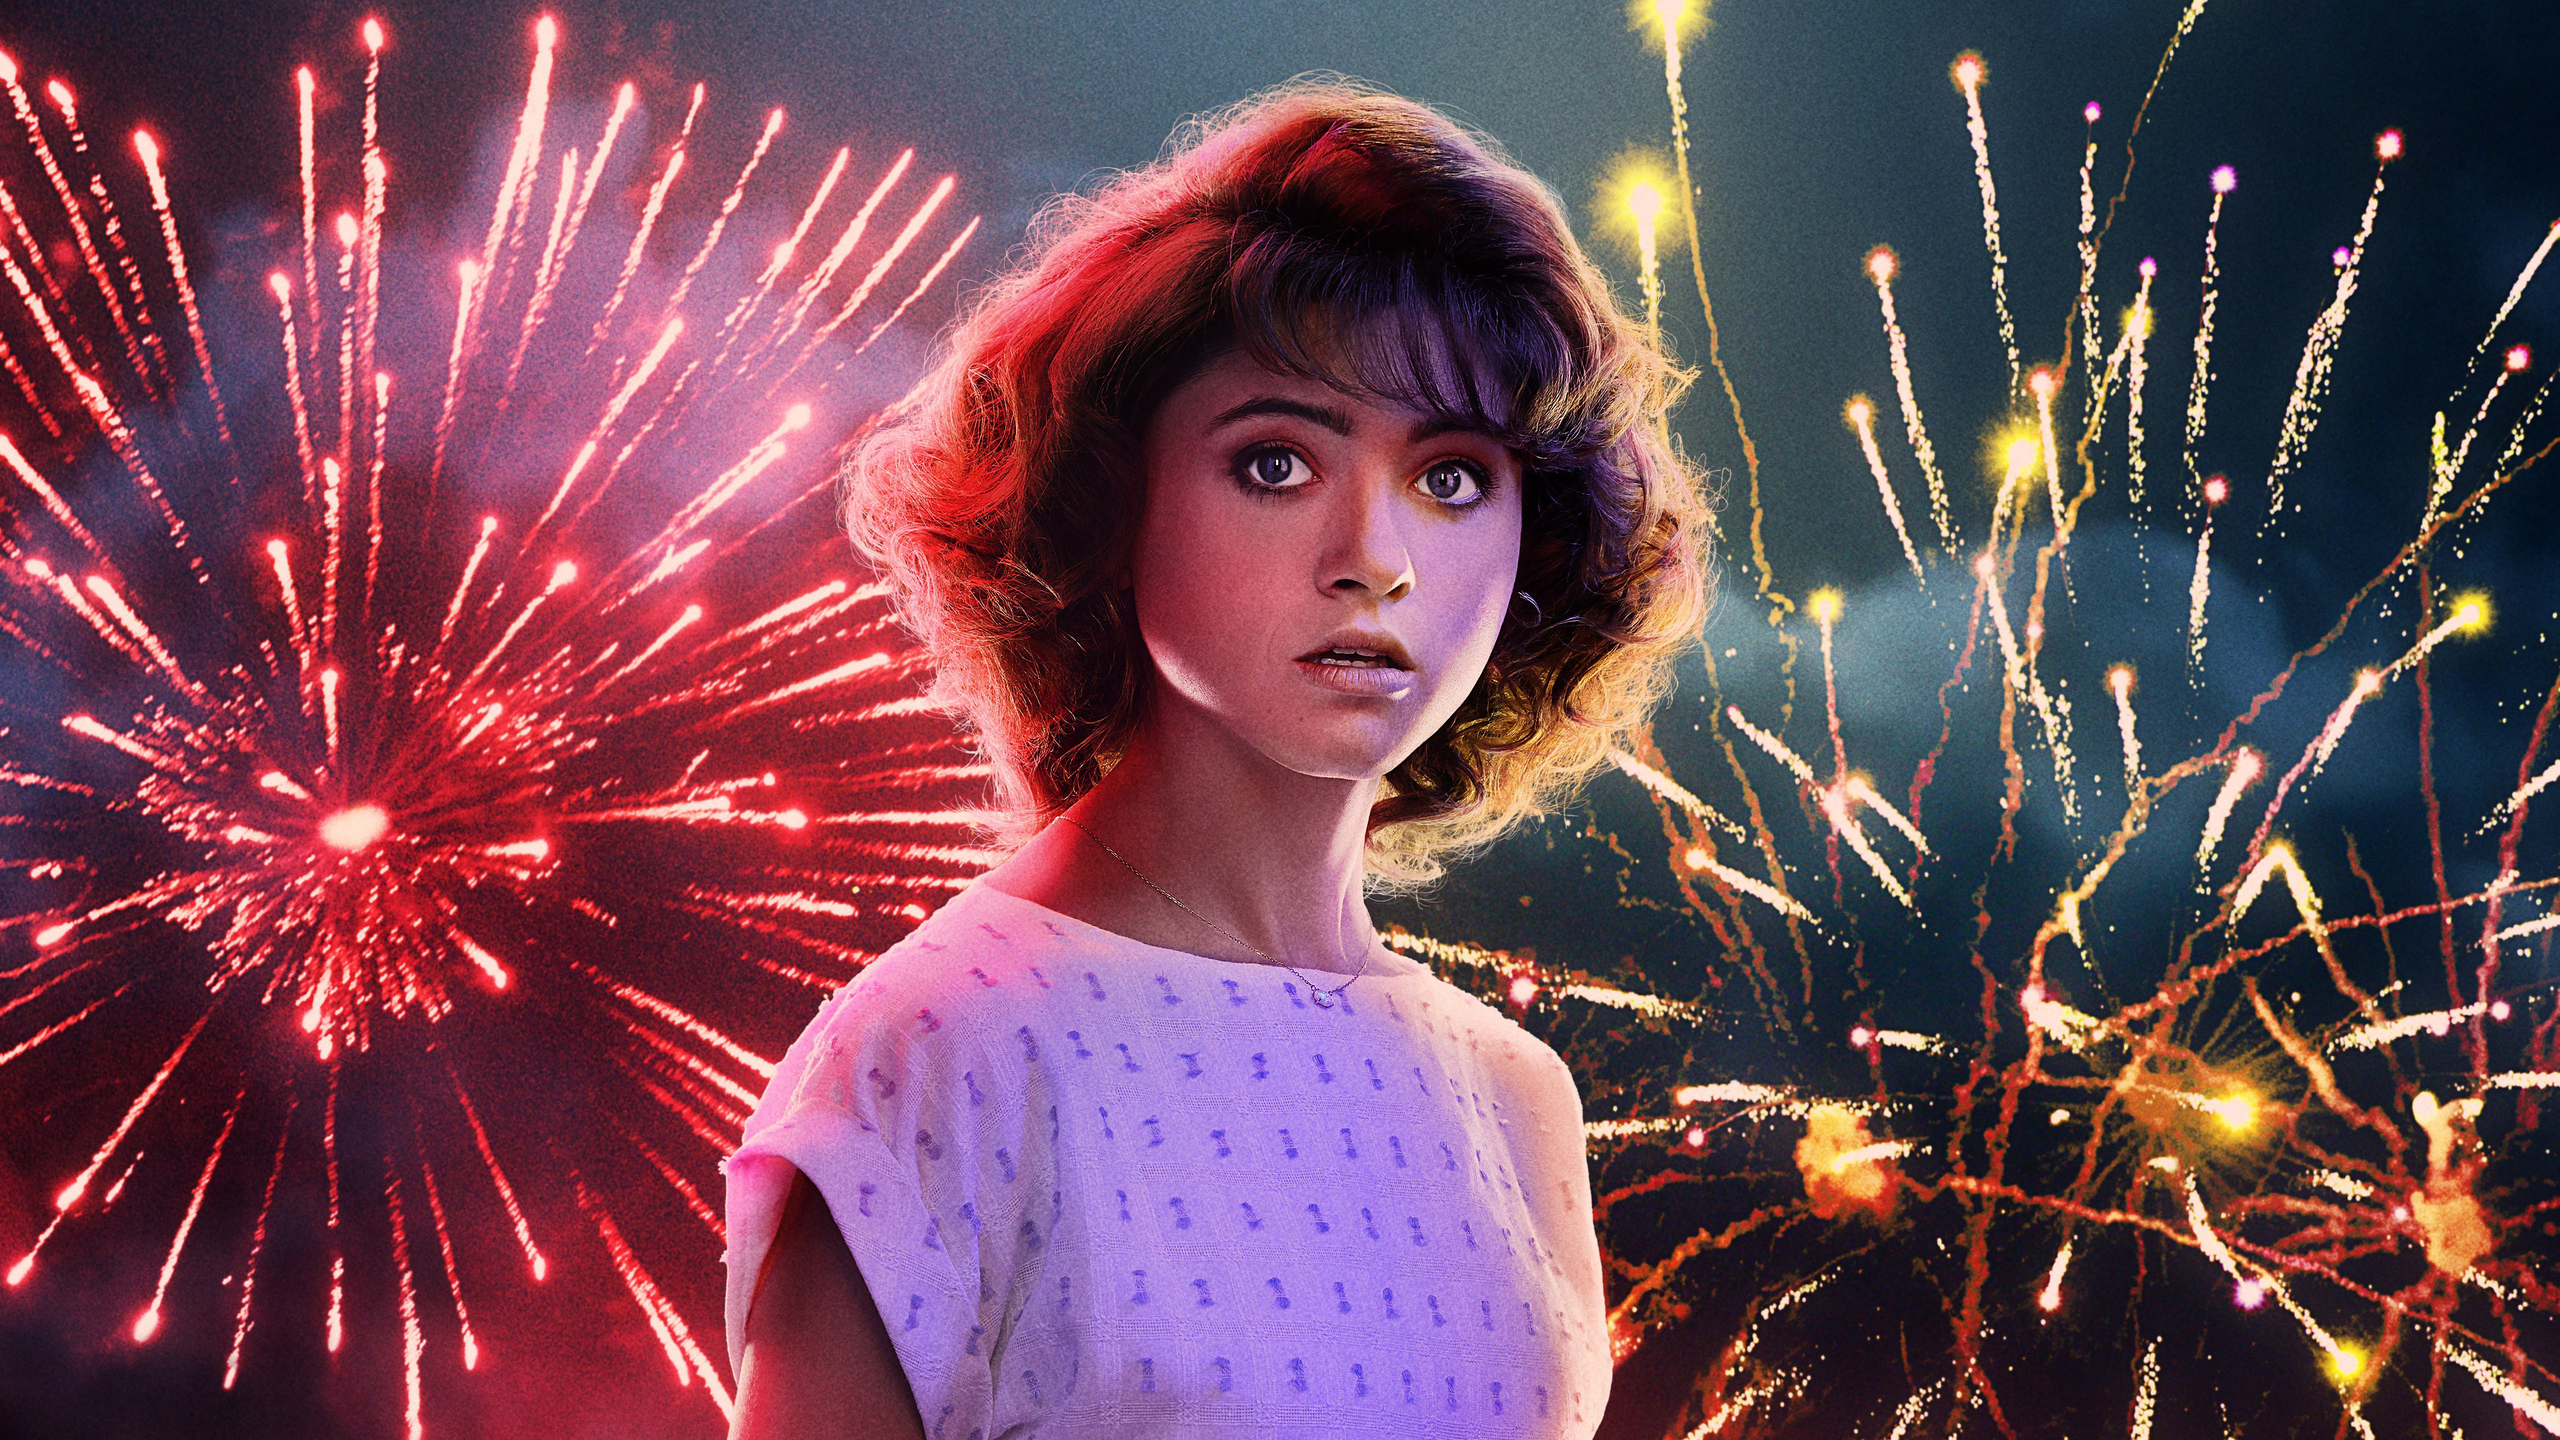 nancy-in-stranger-things-season-3-2019-5k-7a.jpg